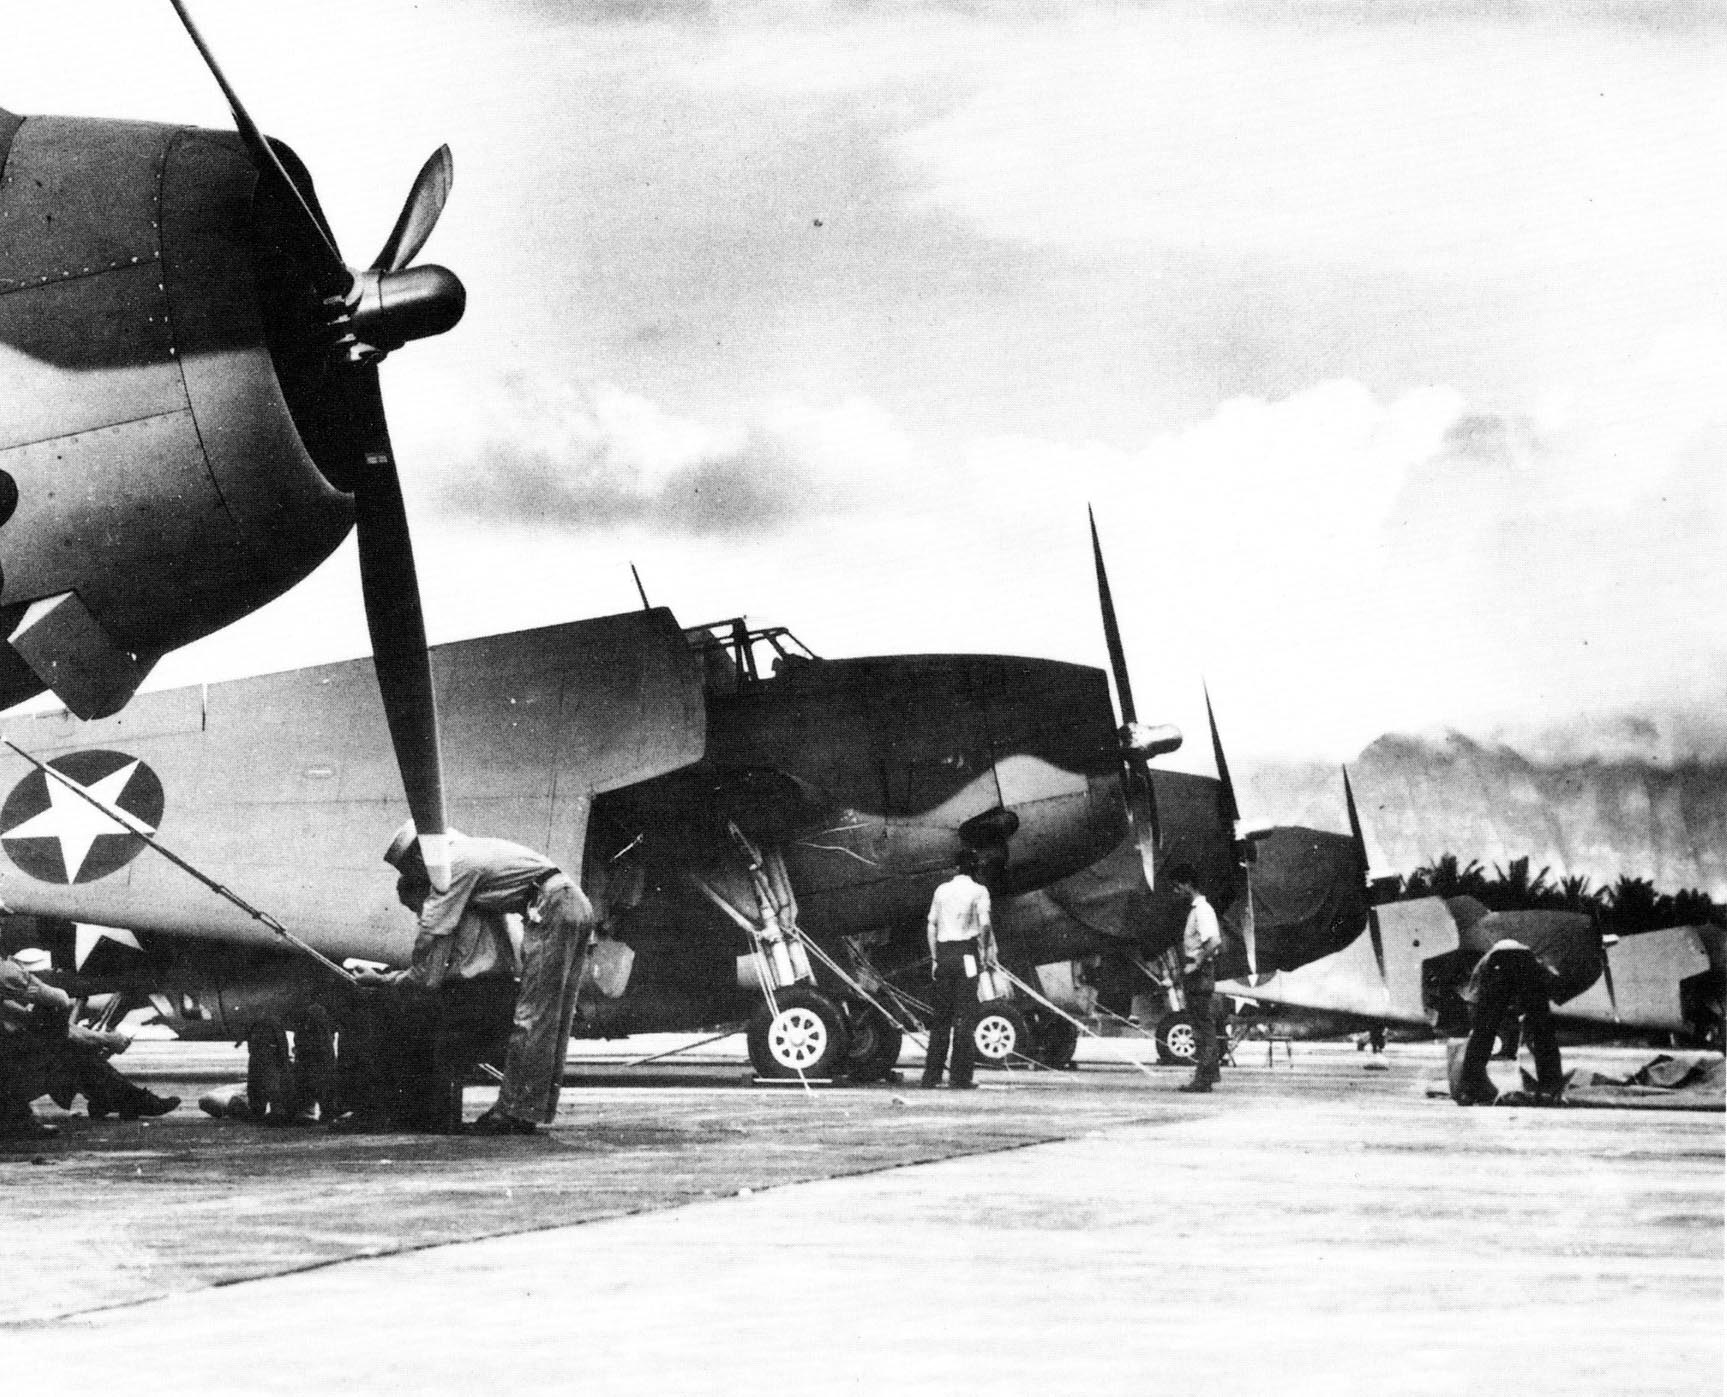 A squadron of TBM Avengers tied down in Hawaii during WWII. [Photo Credit: National Archives]